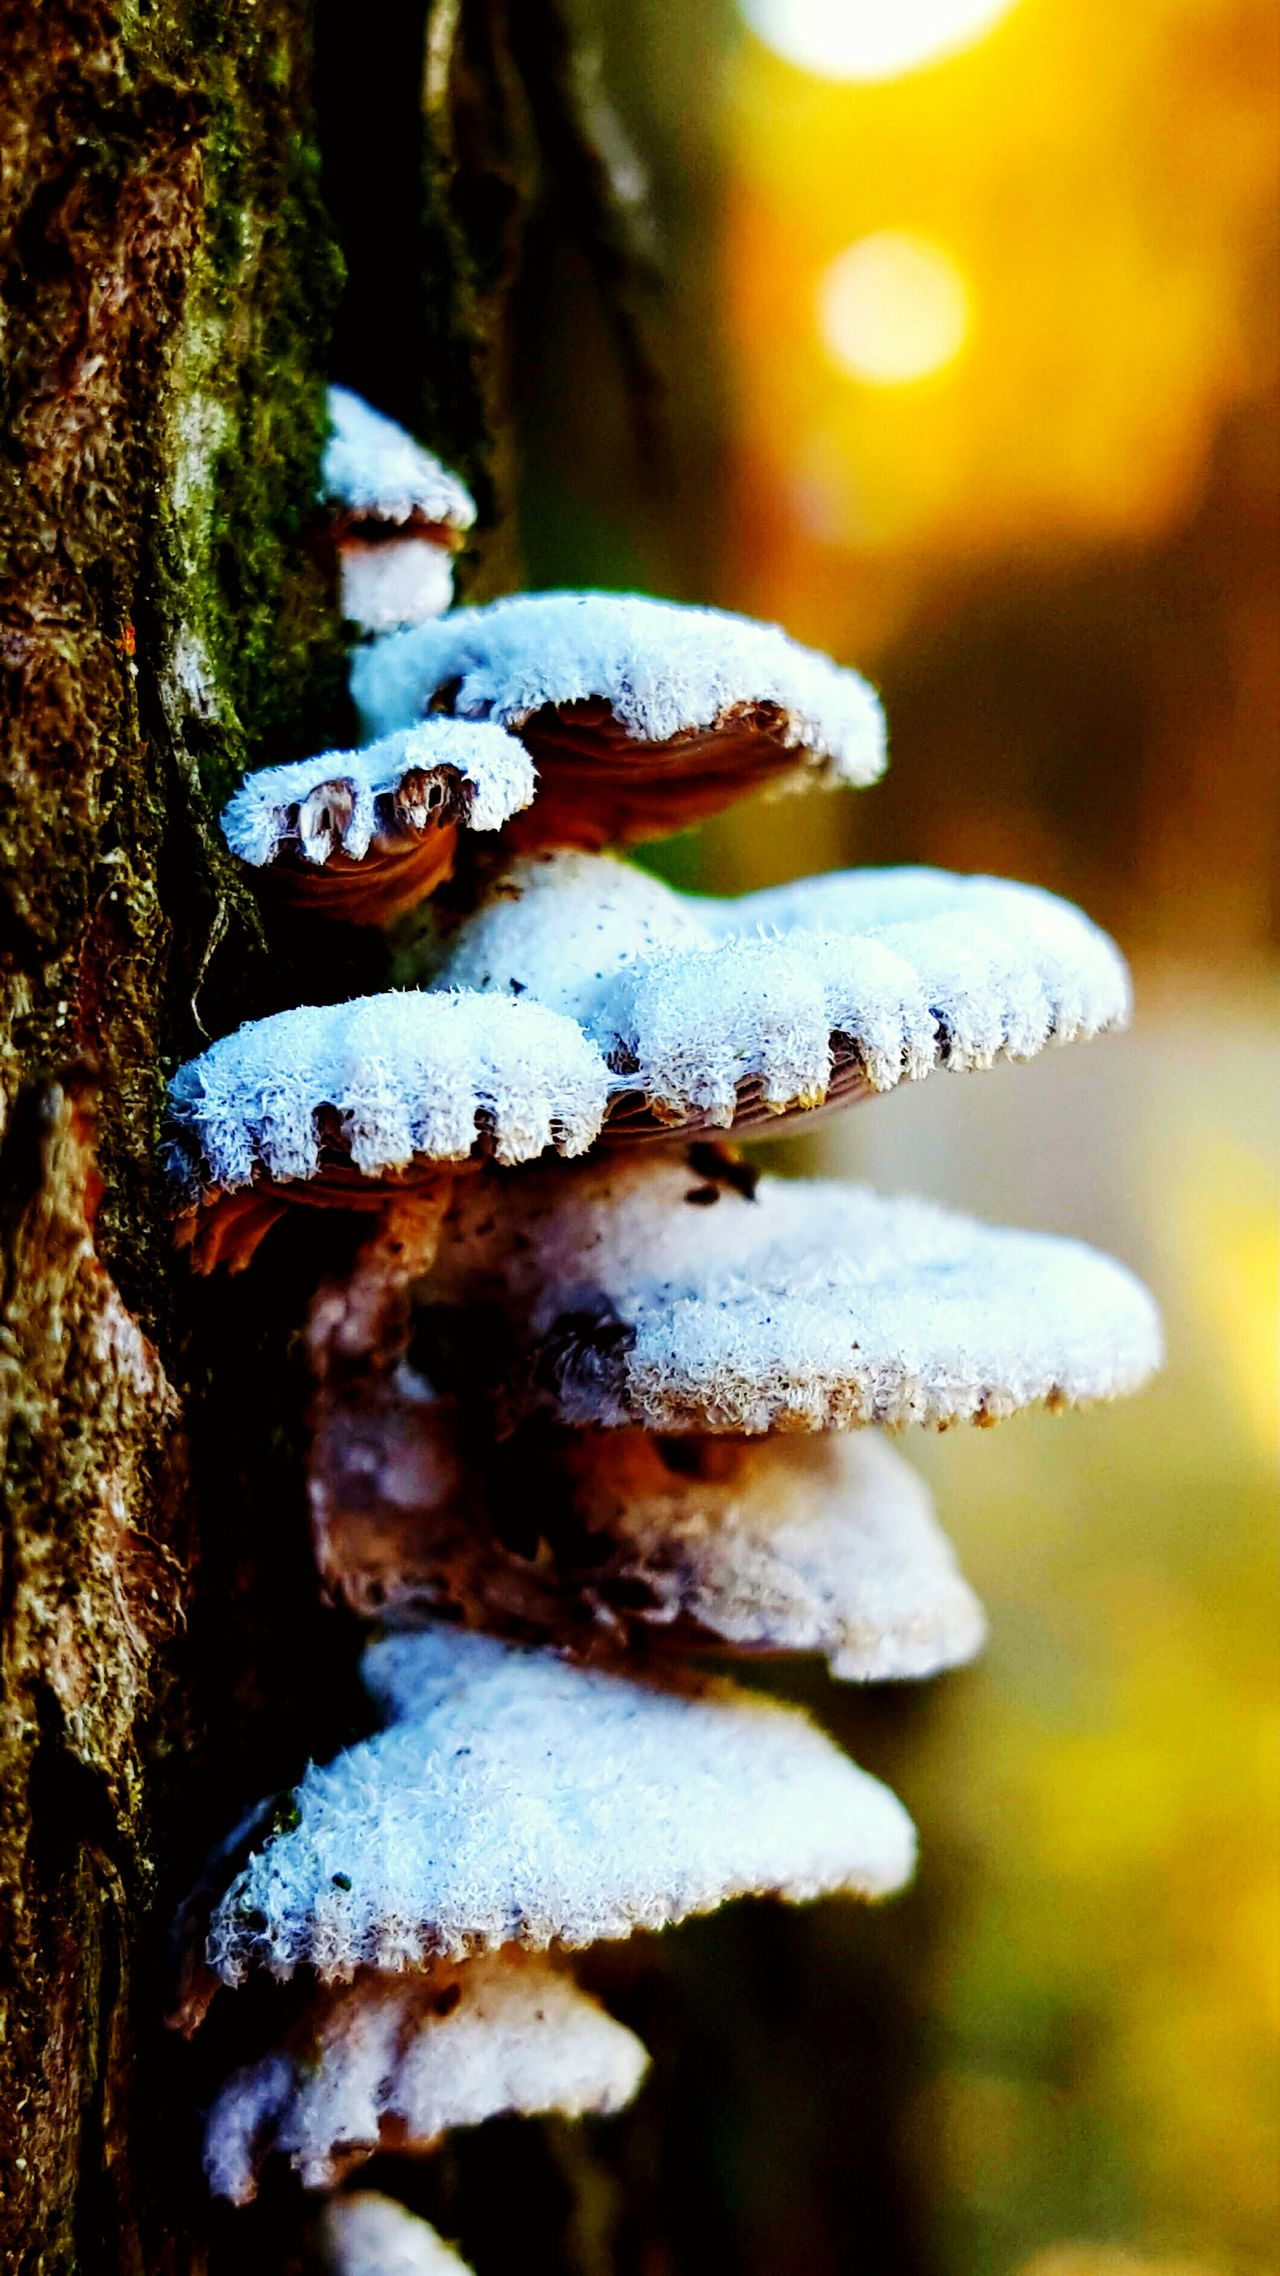 Mushroom Mushroom_pictures Mushrooms 🍄🍄 Mushrooms Magic. Mushroom Photography Mushrooms On A Tree Mushrooms Growing Wild Growth Beauty In Nature Complexity Outdoors Nature Textured  Colourful Multi Colored Beauty In Nature Winter Tree